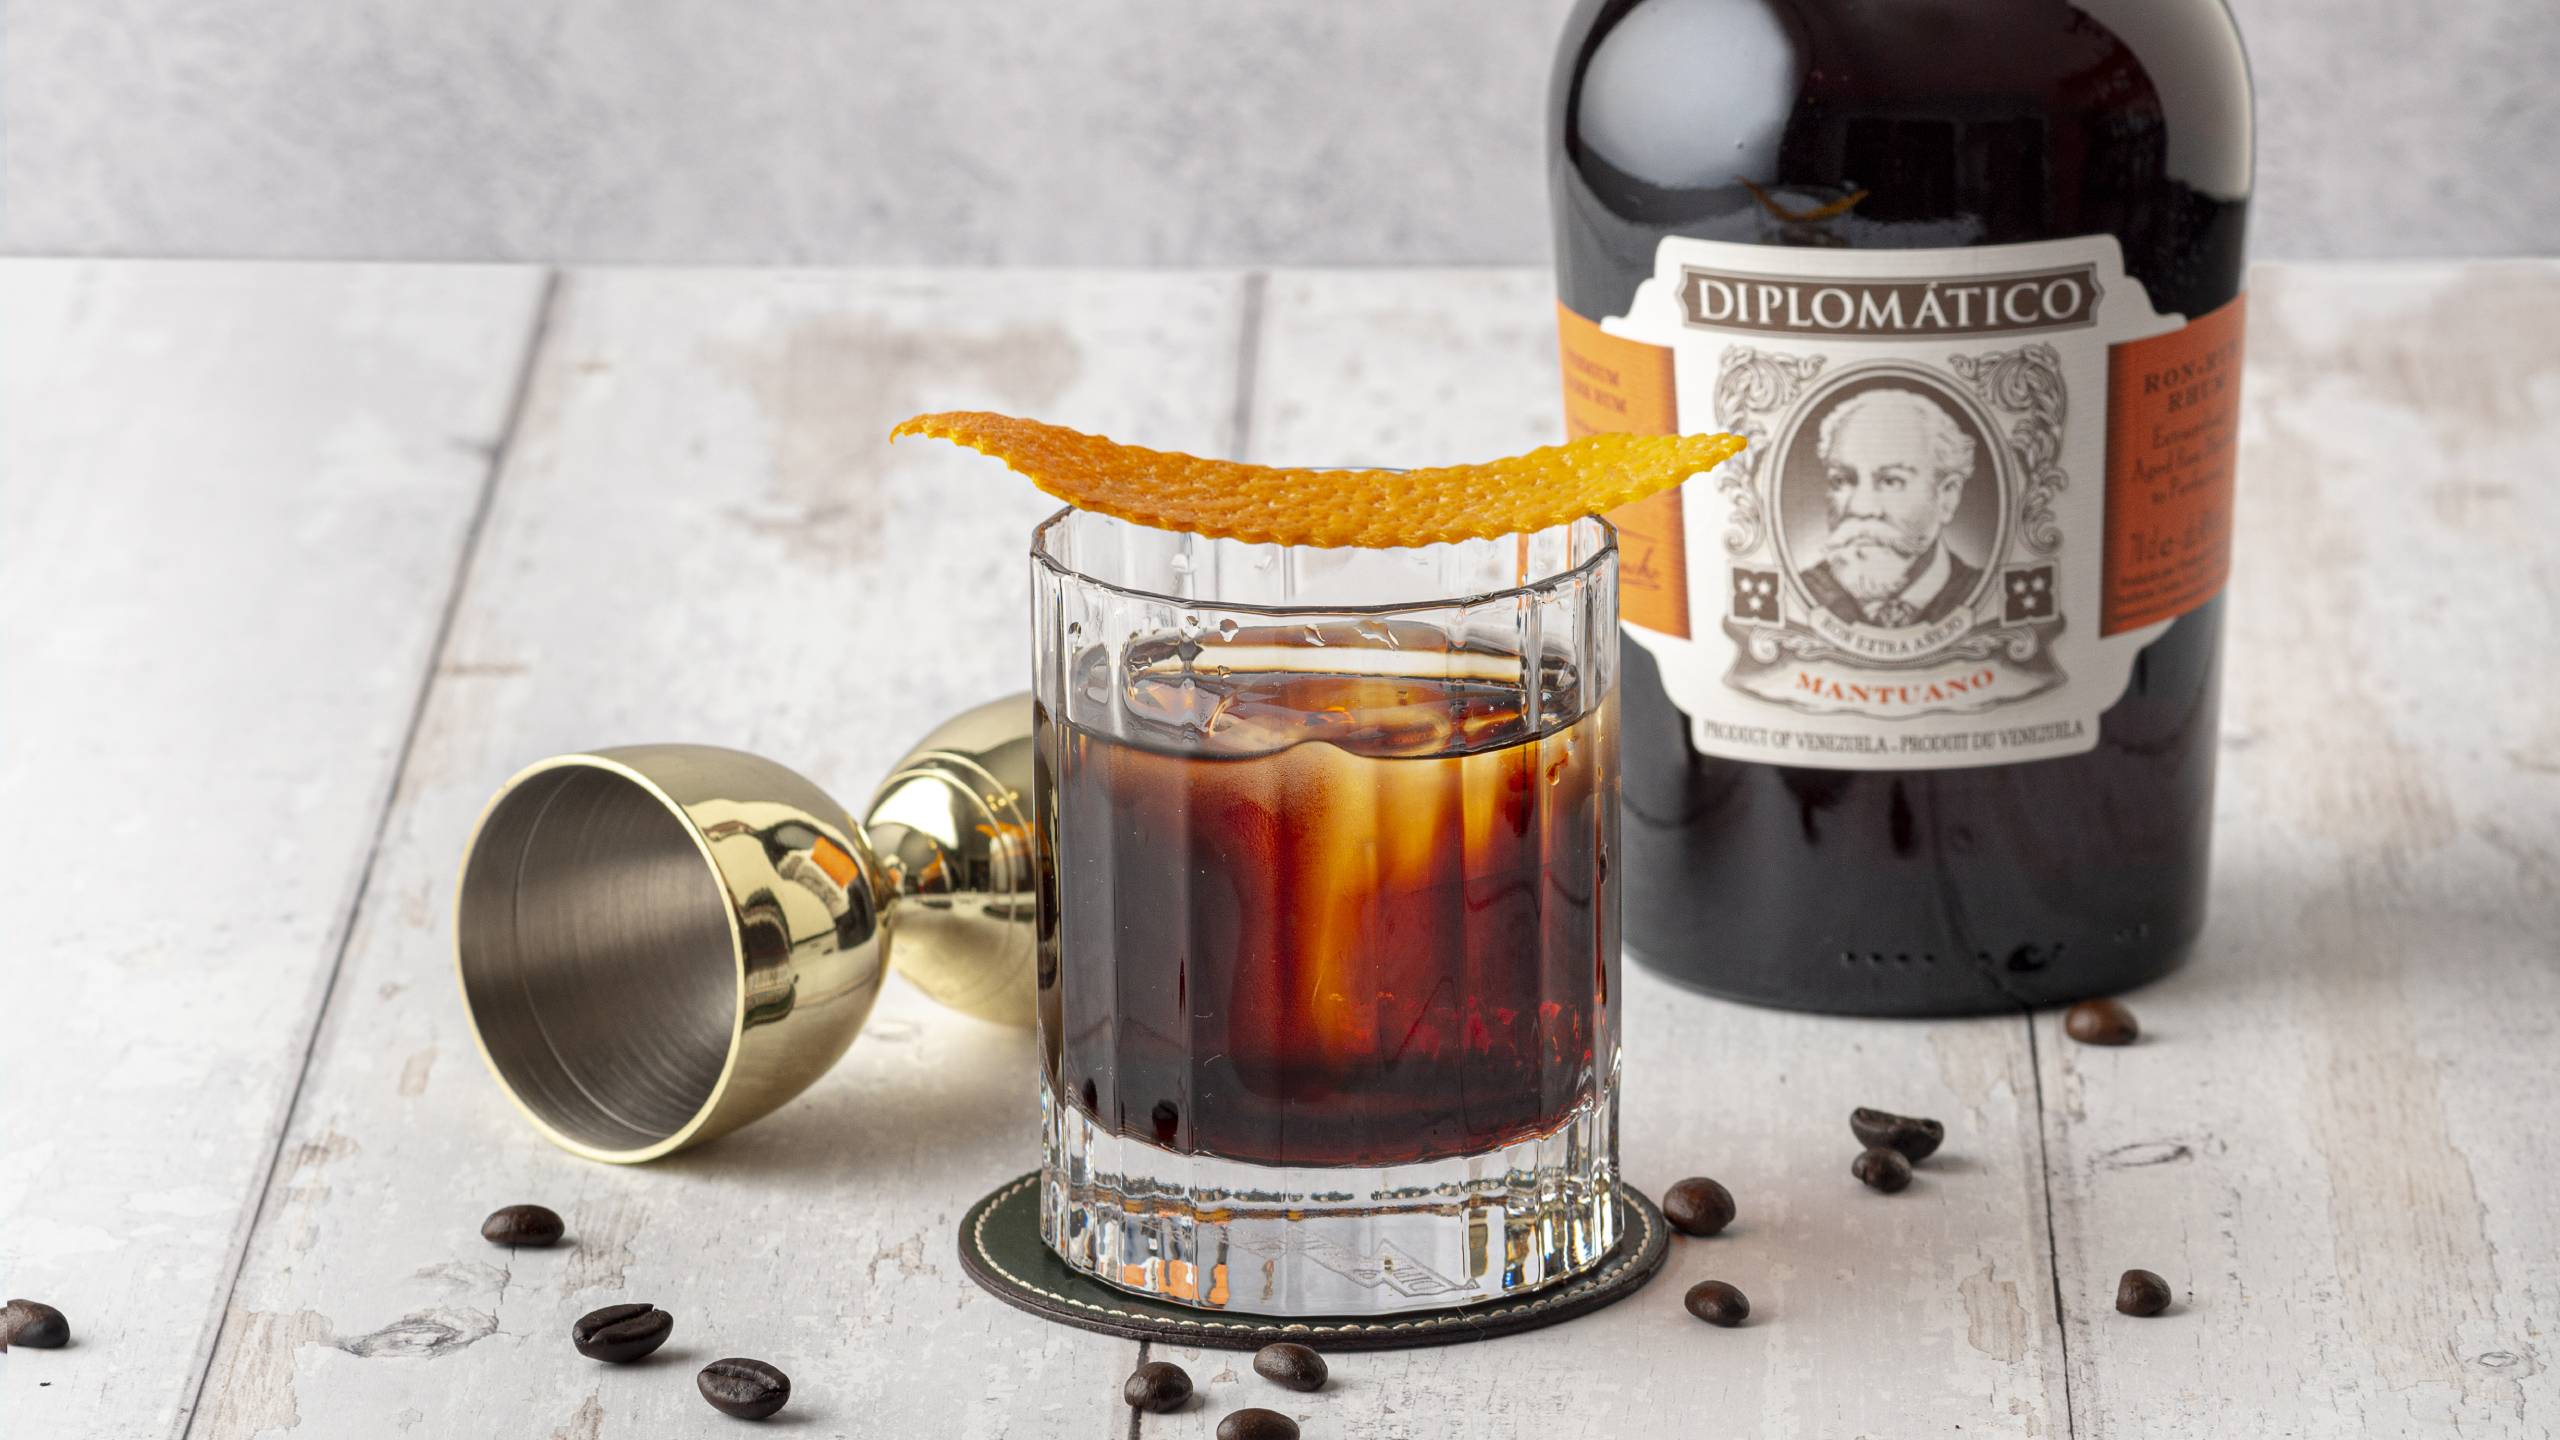 Diplomatico Coffee Day